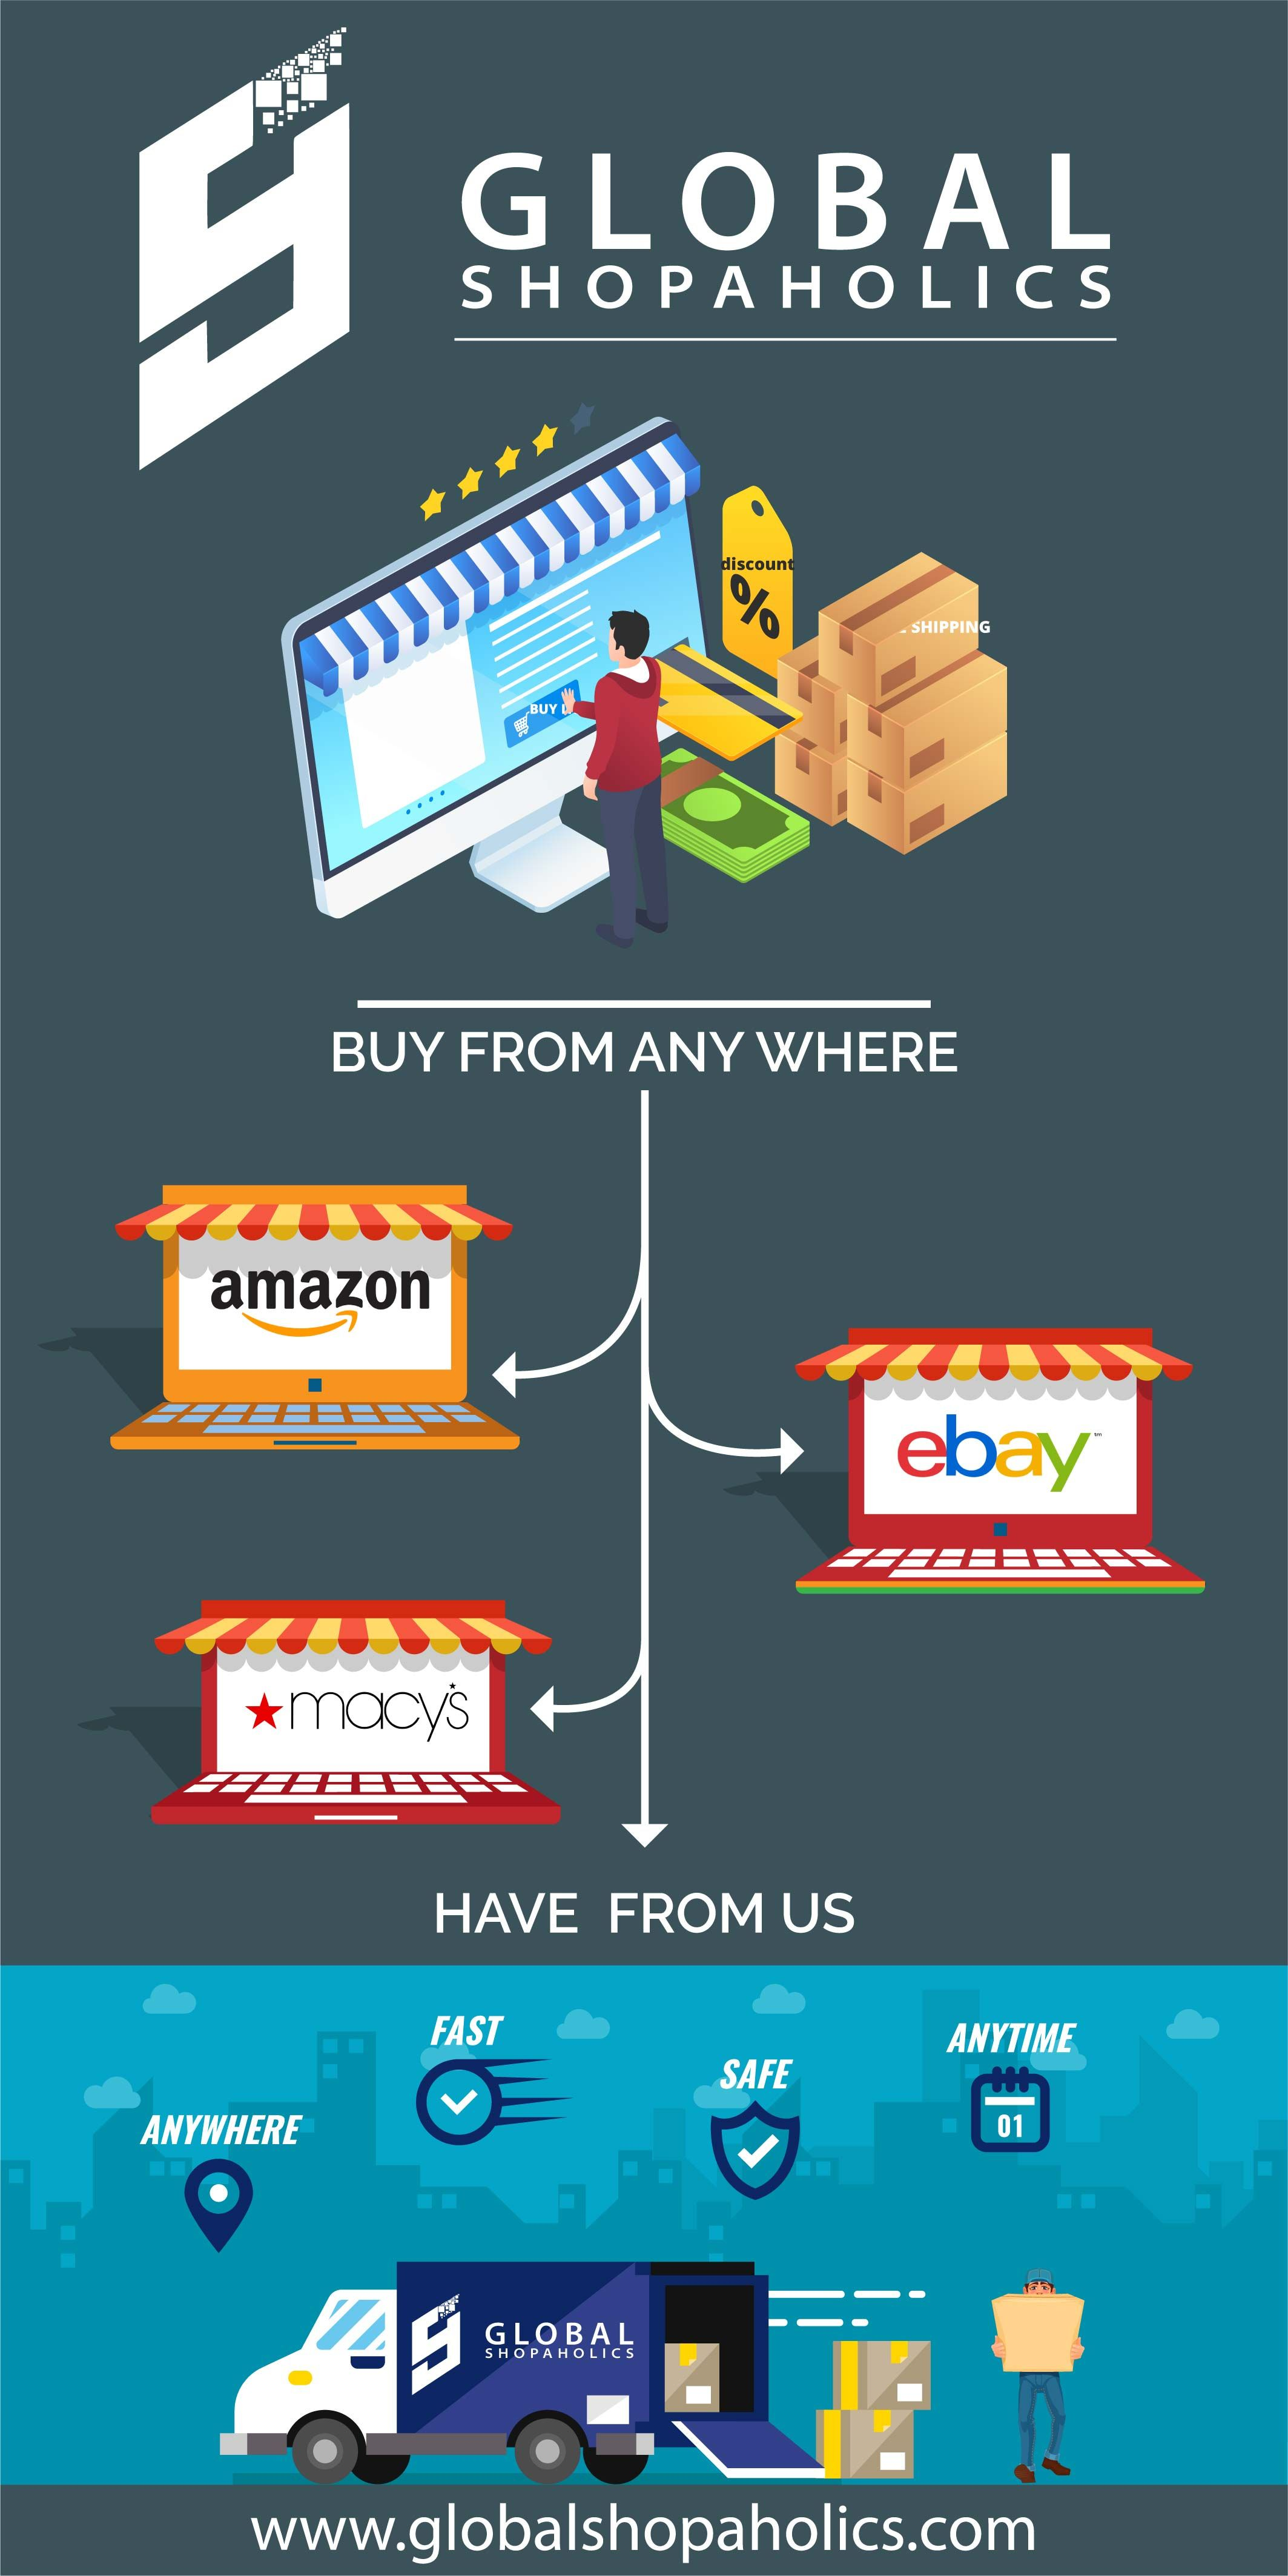 Buy from anywhere and get free us addresses of